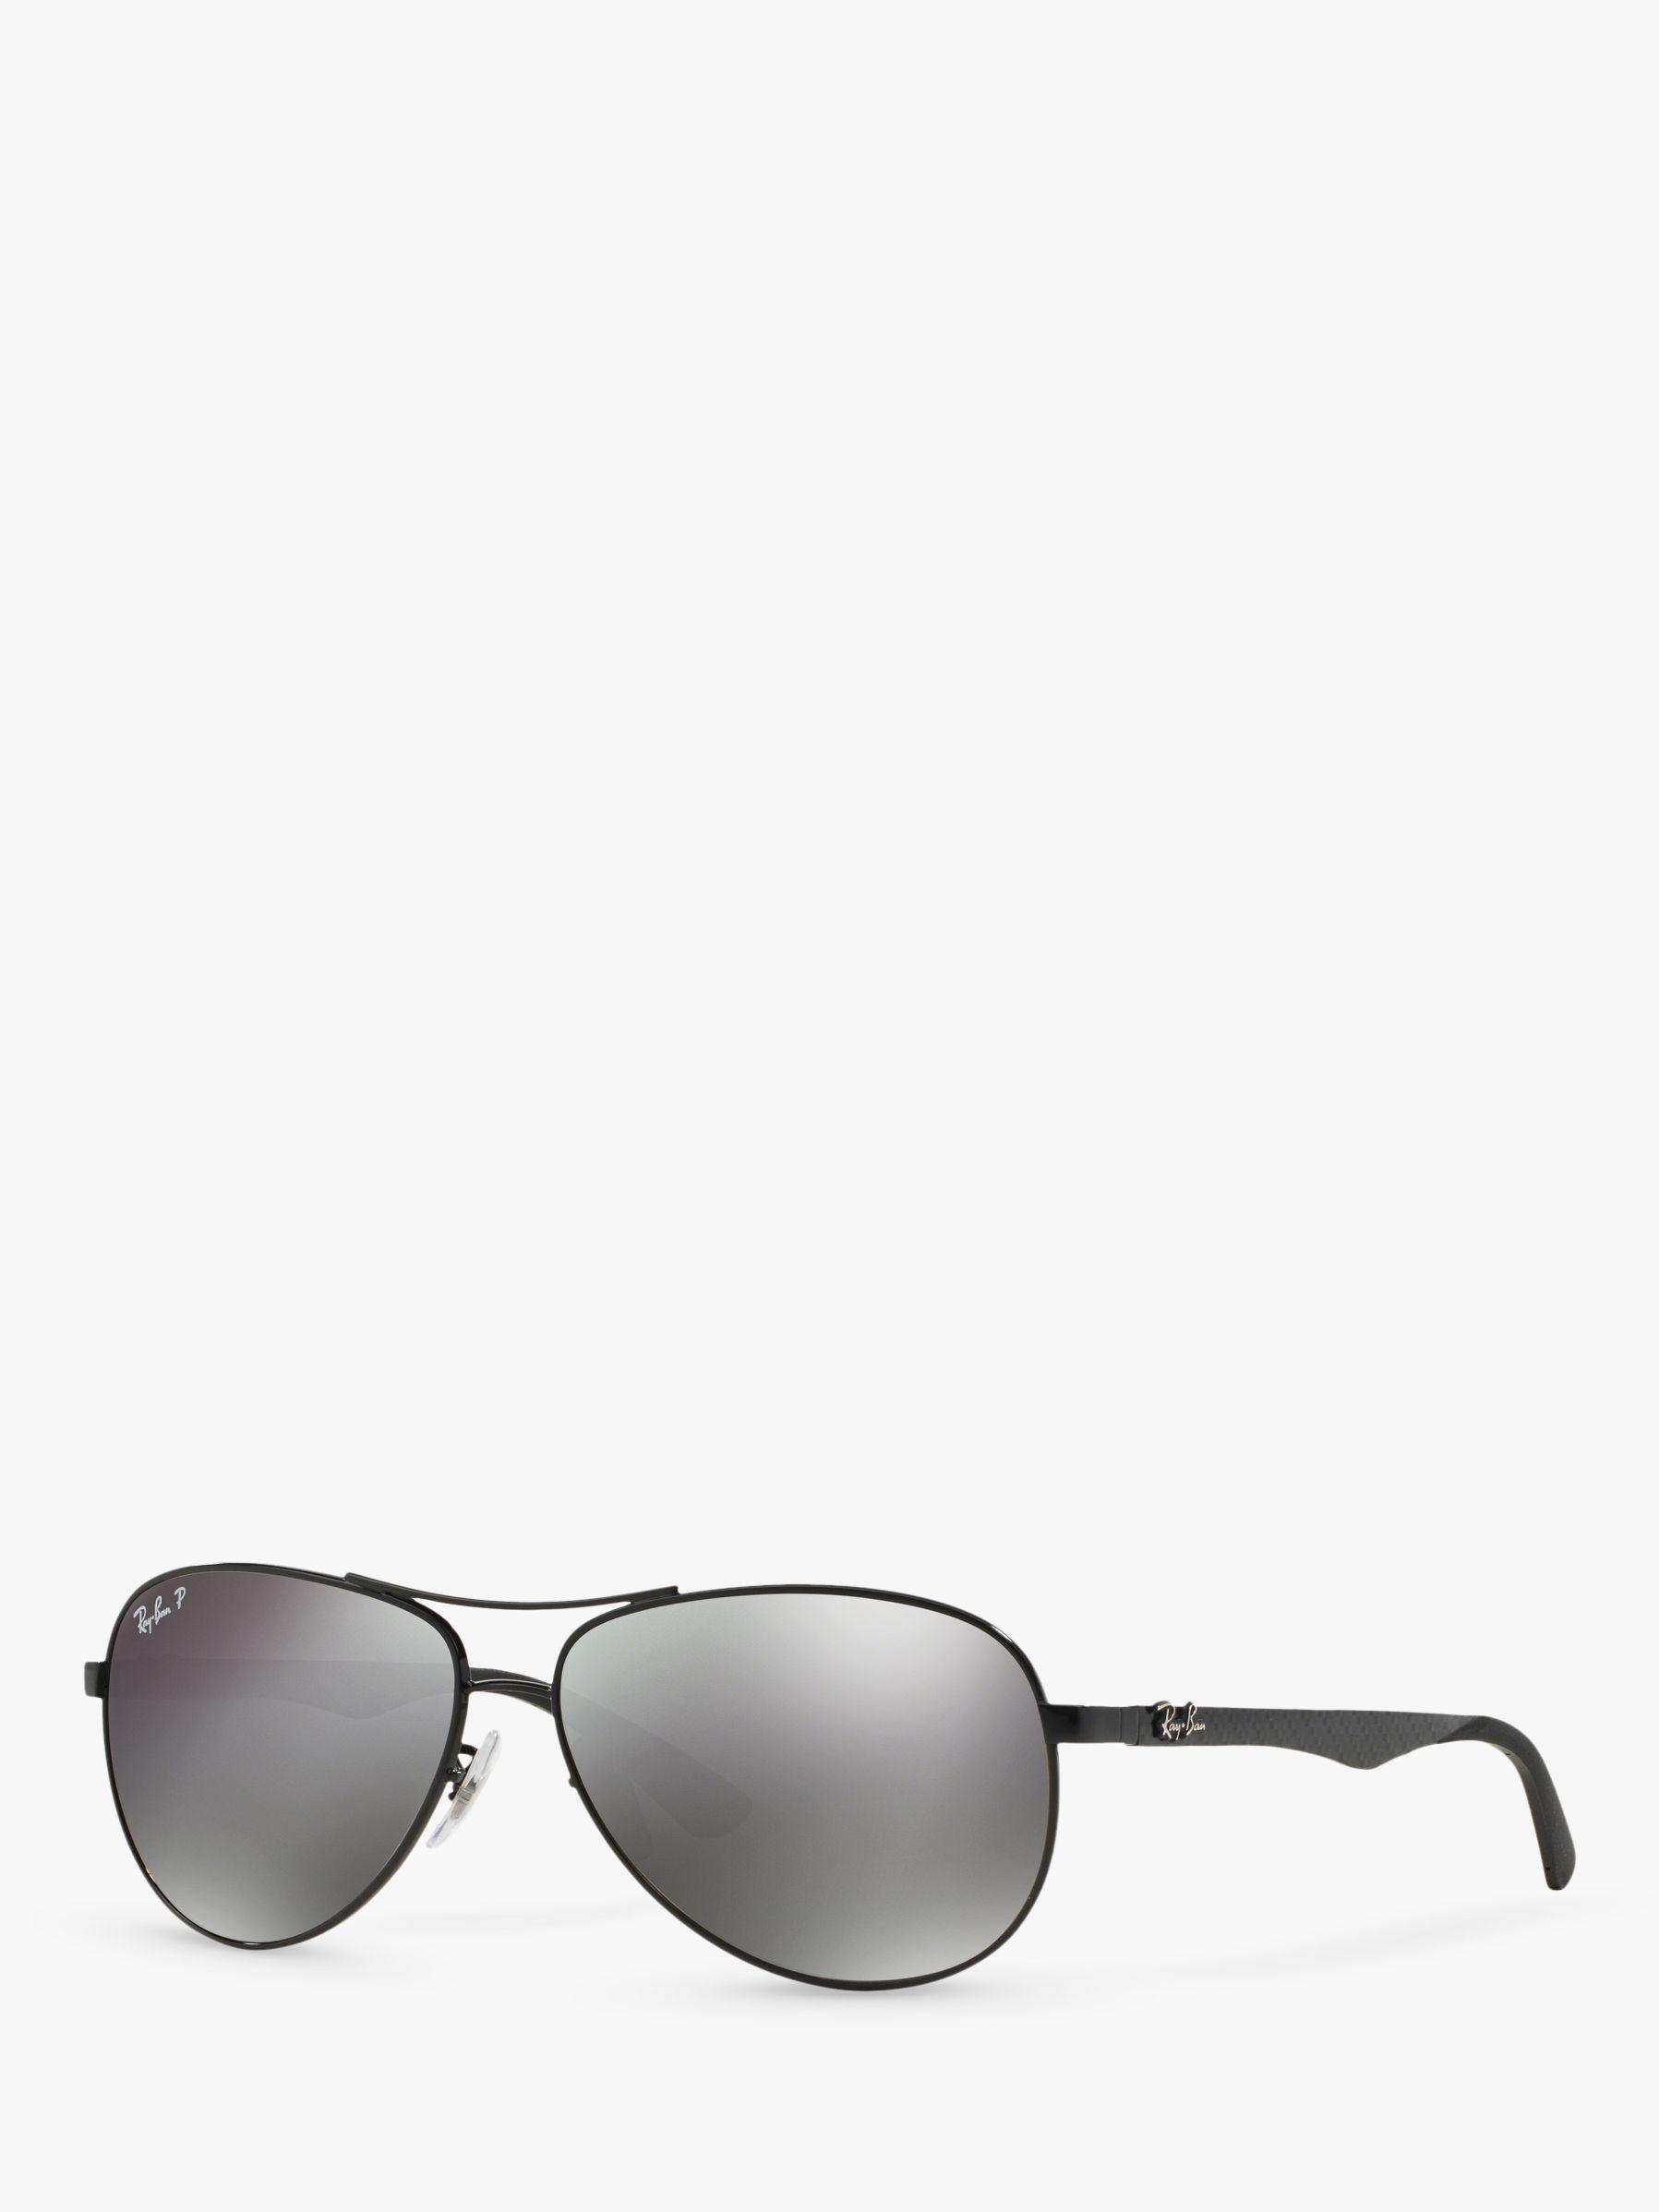 2cd4028a2b Ray-Ban. Men s Black Rb8313 Polarised Aviator Sunglasses. £235 From John  Lewis ...